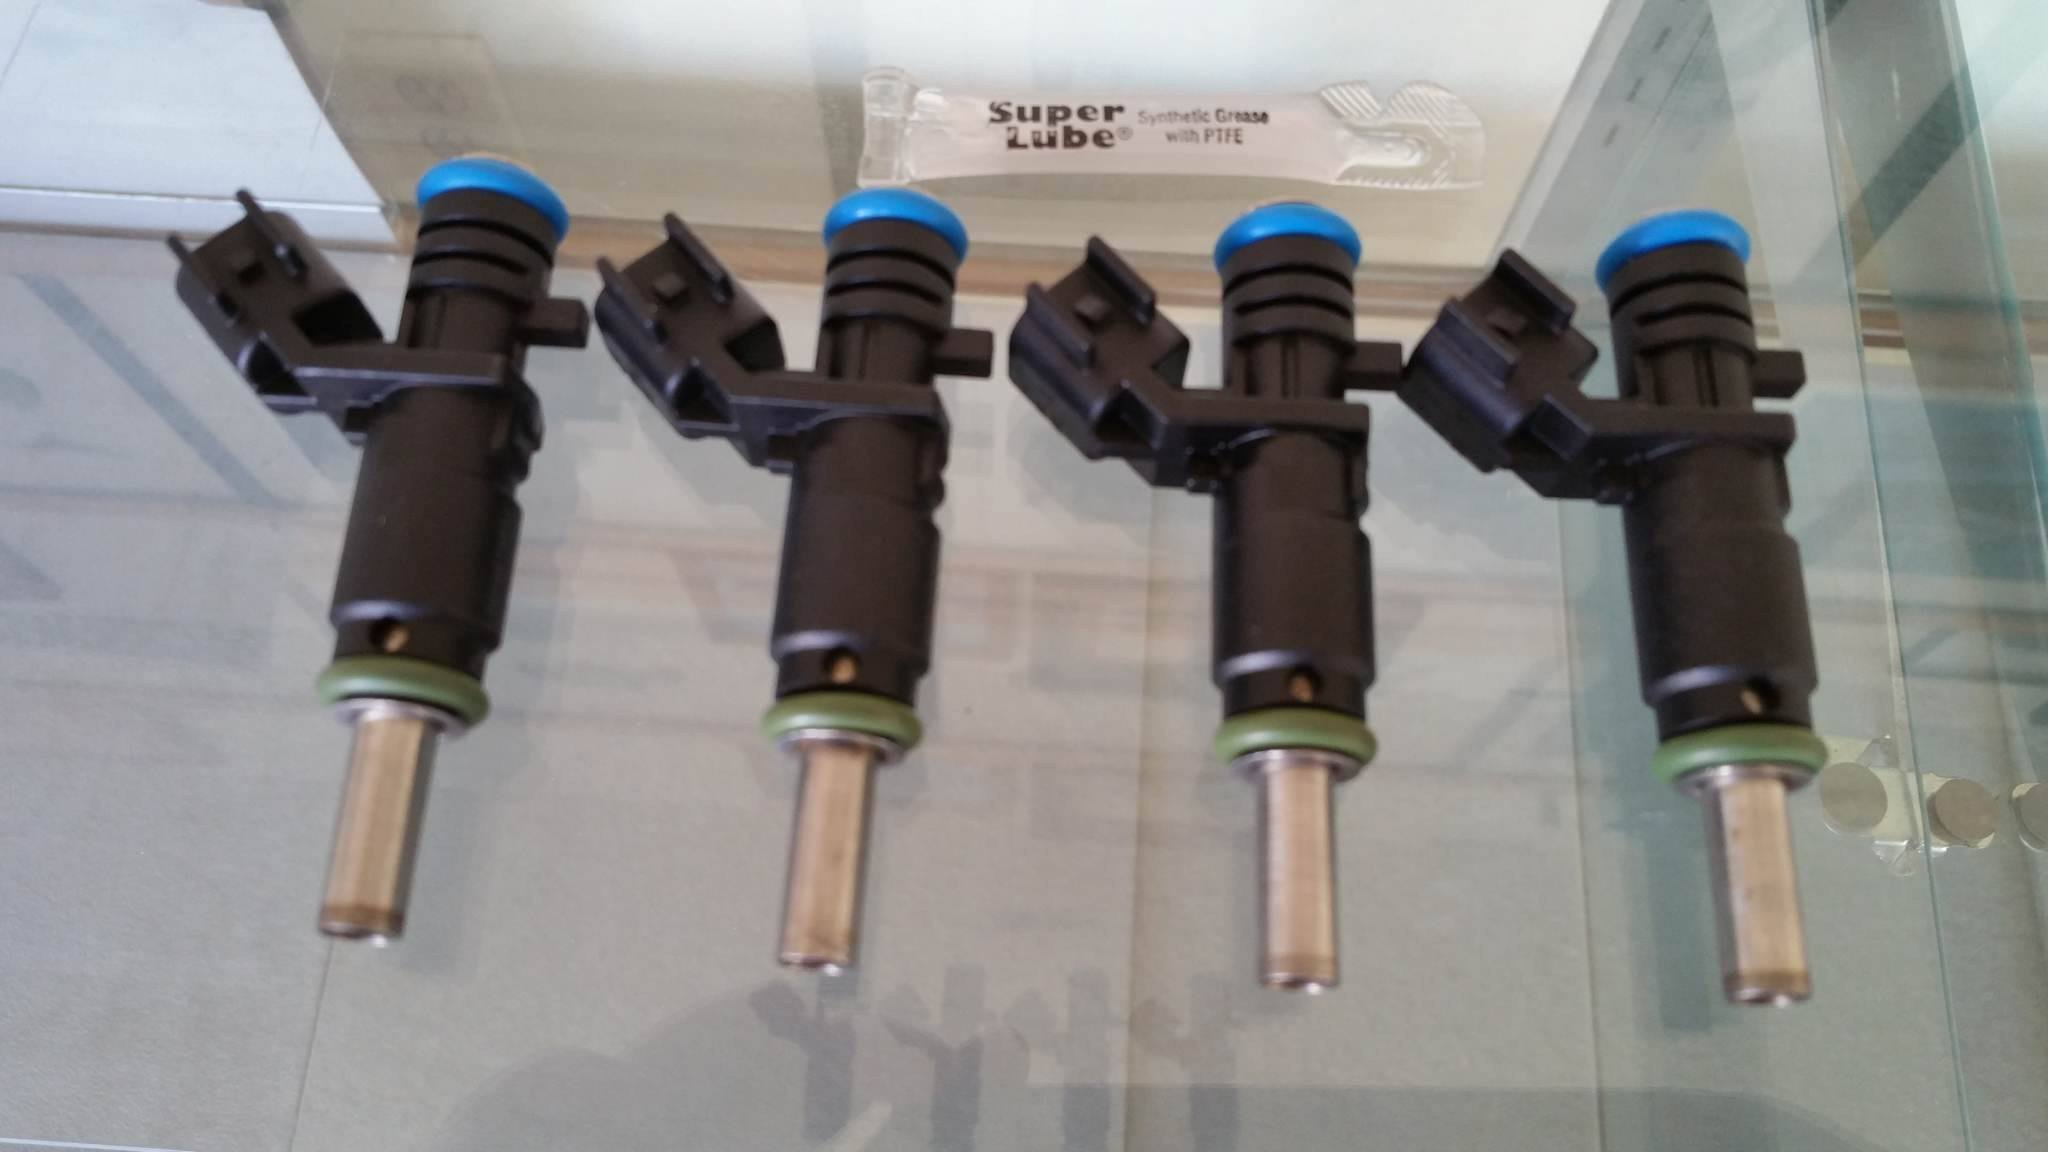 550cc Injectors for E85